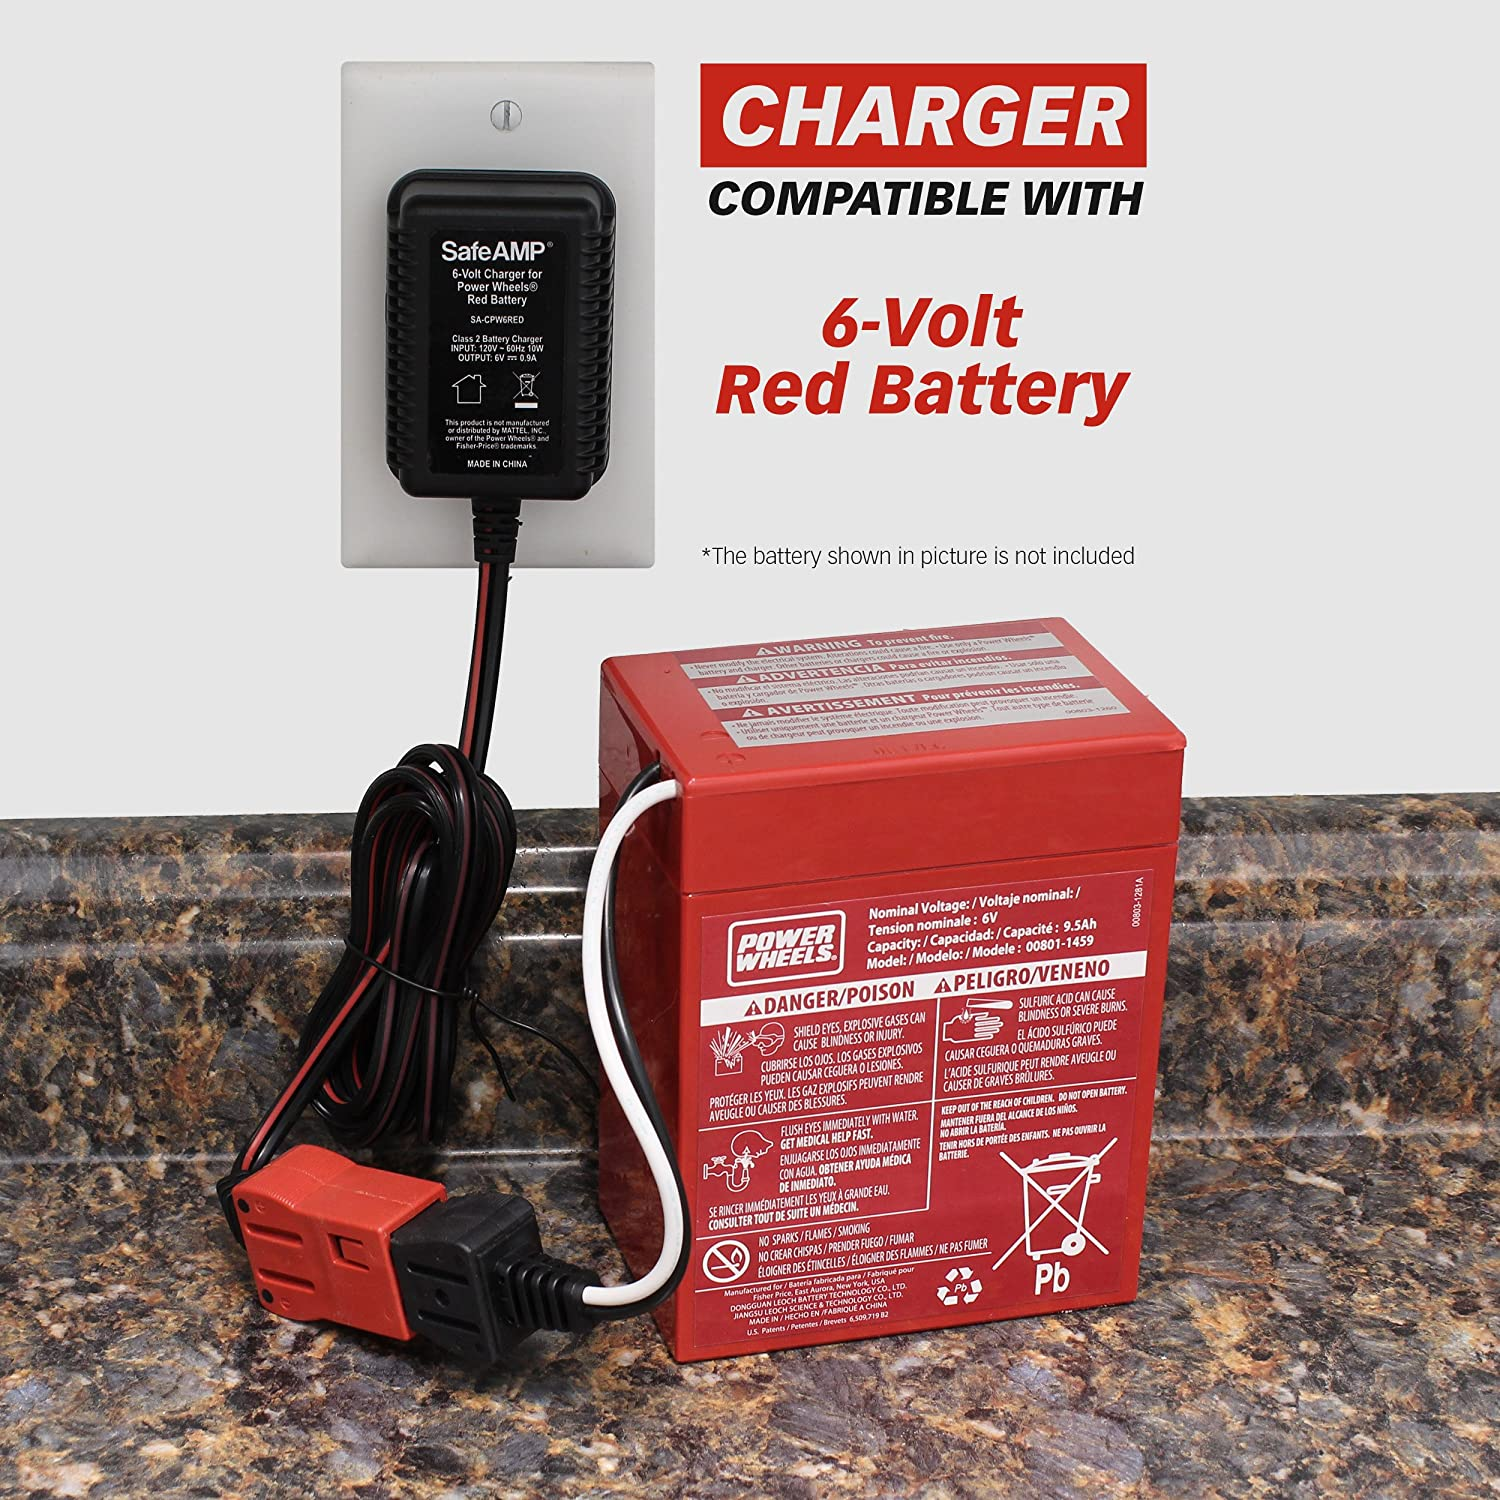 Safeamp 6 Volt Charger For Fisher Price Power Wheels Red Two Batteries In Series Will Give You A 12v Circuit This Battery Toys Games